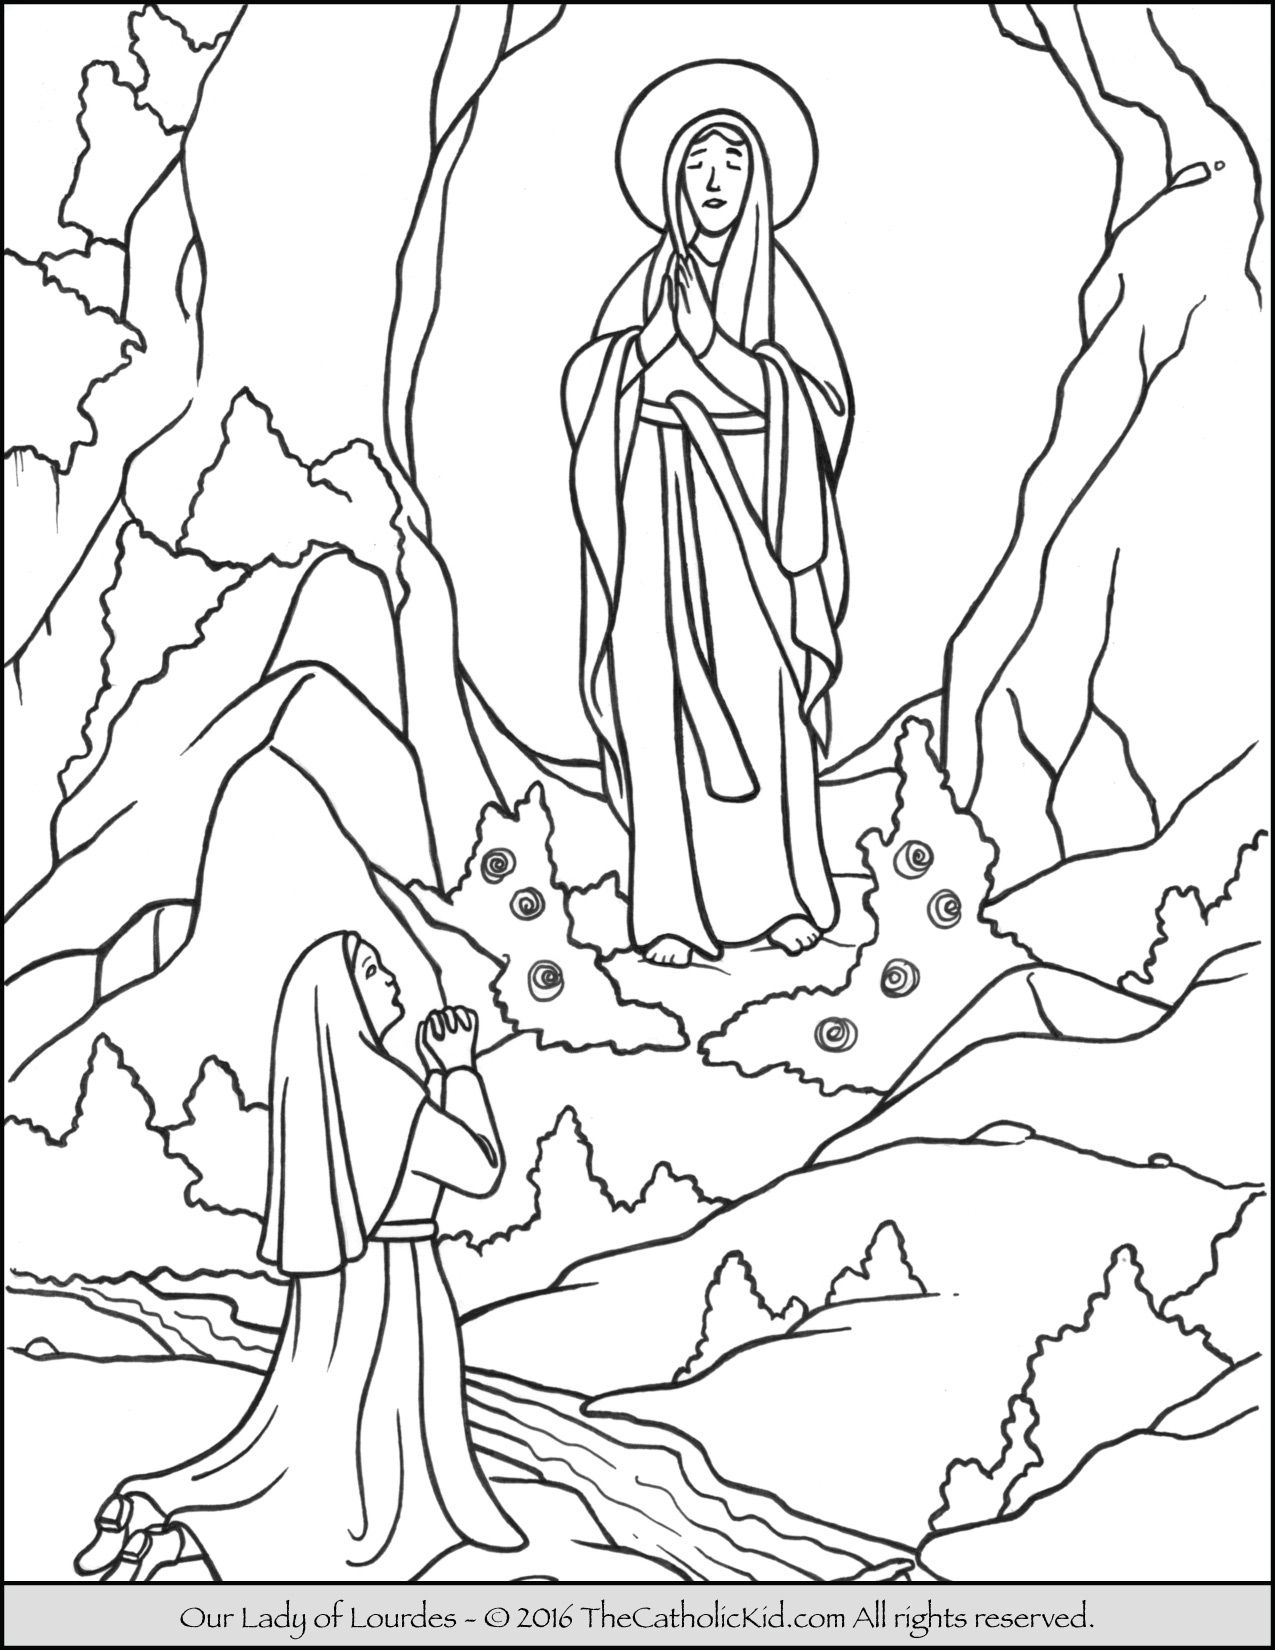 Our Lady of Lourdes Coloring Page | Catholic Coloring Pages for Kids ...